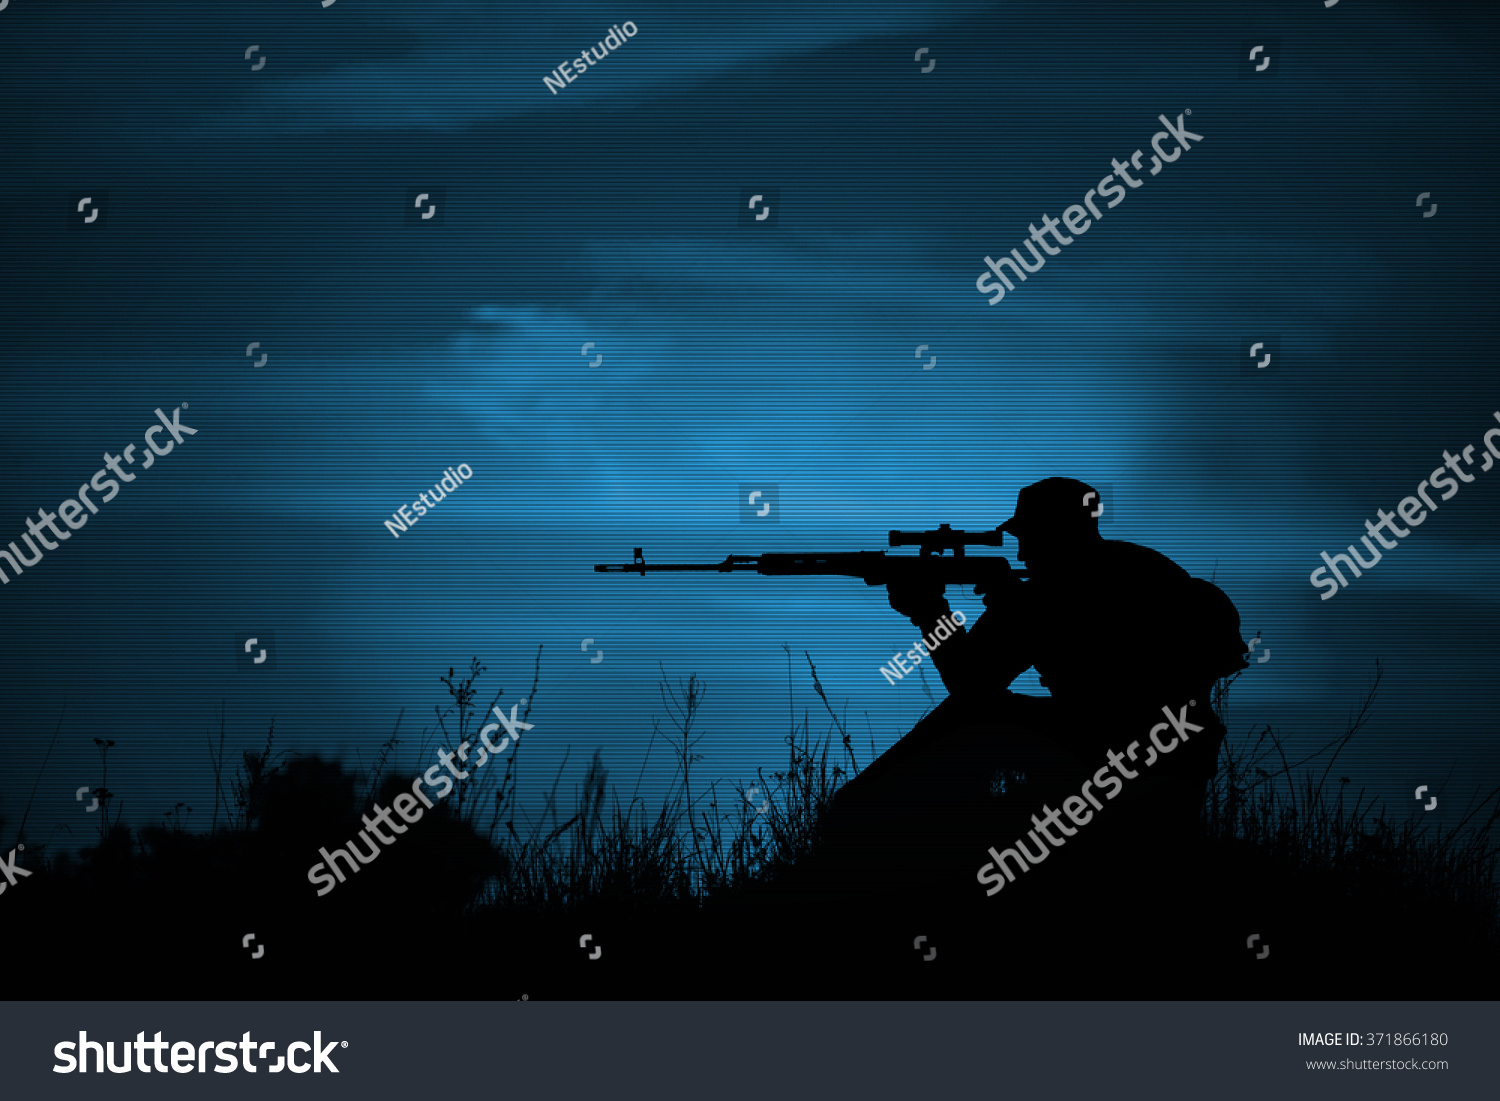 Silhouette Military Sniper Weapons Night Night Stock Photo ...